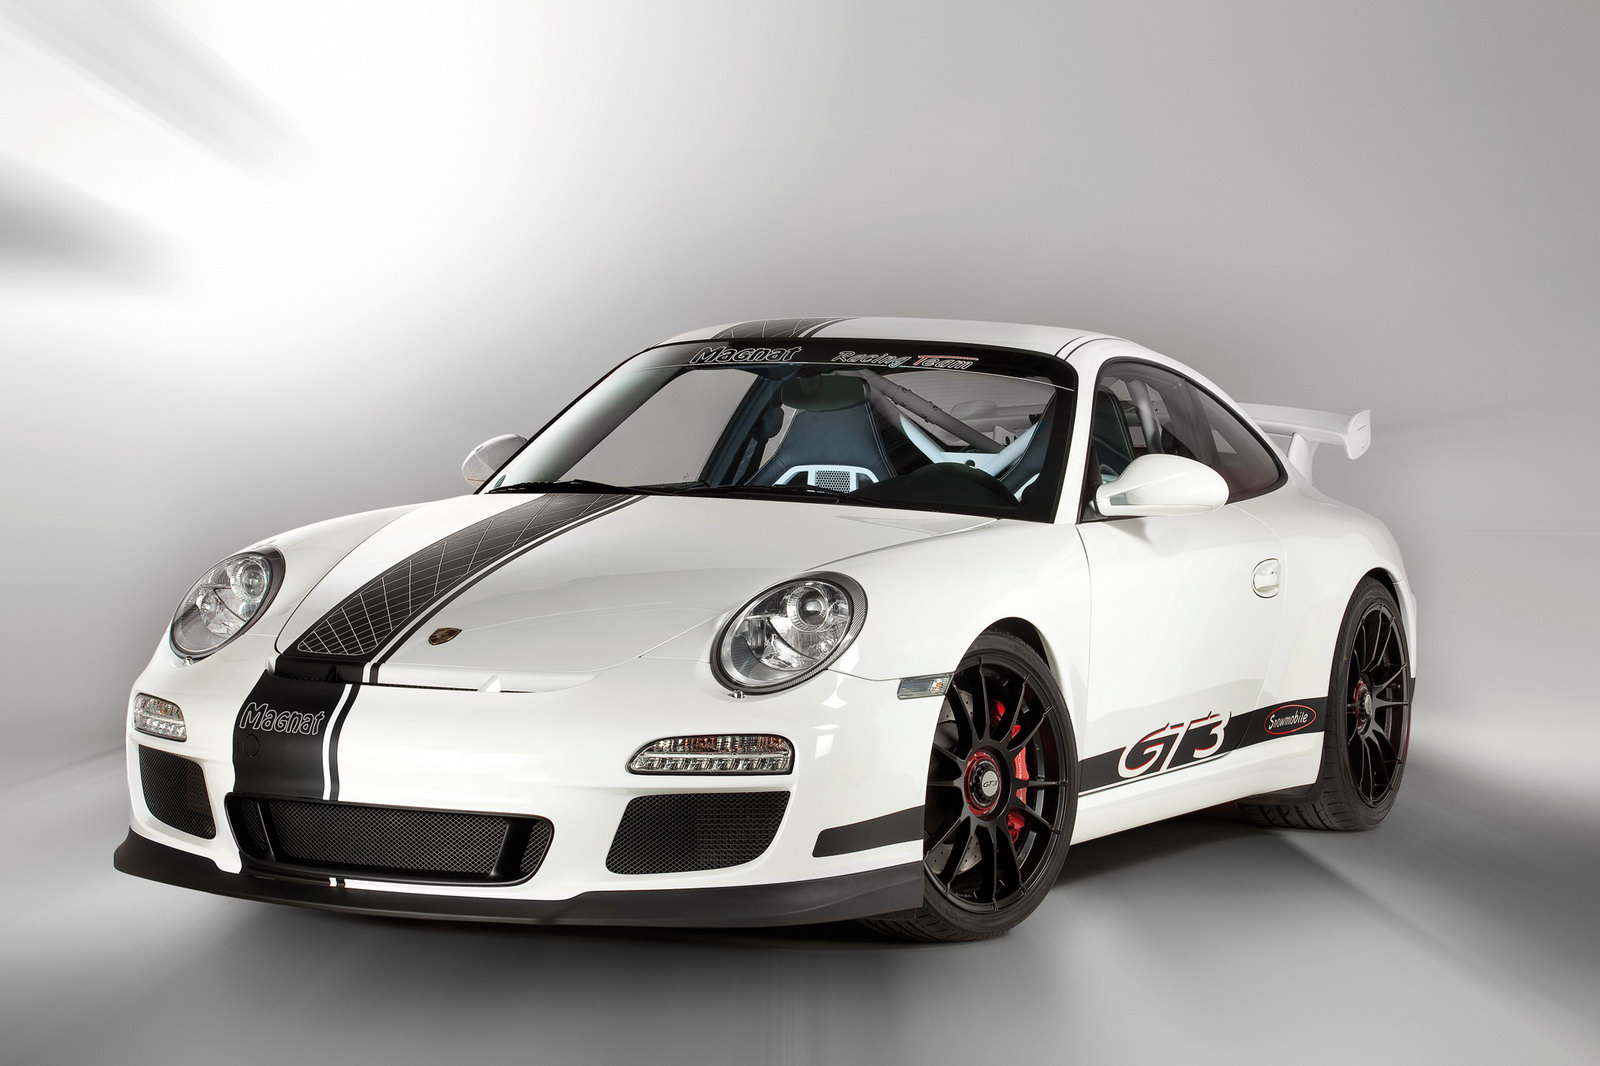 Magnat Porsche Auspuff 4 Porsche 911 GT3  Fuel Economic and Energy Efficient